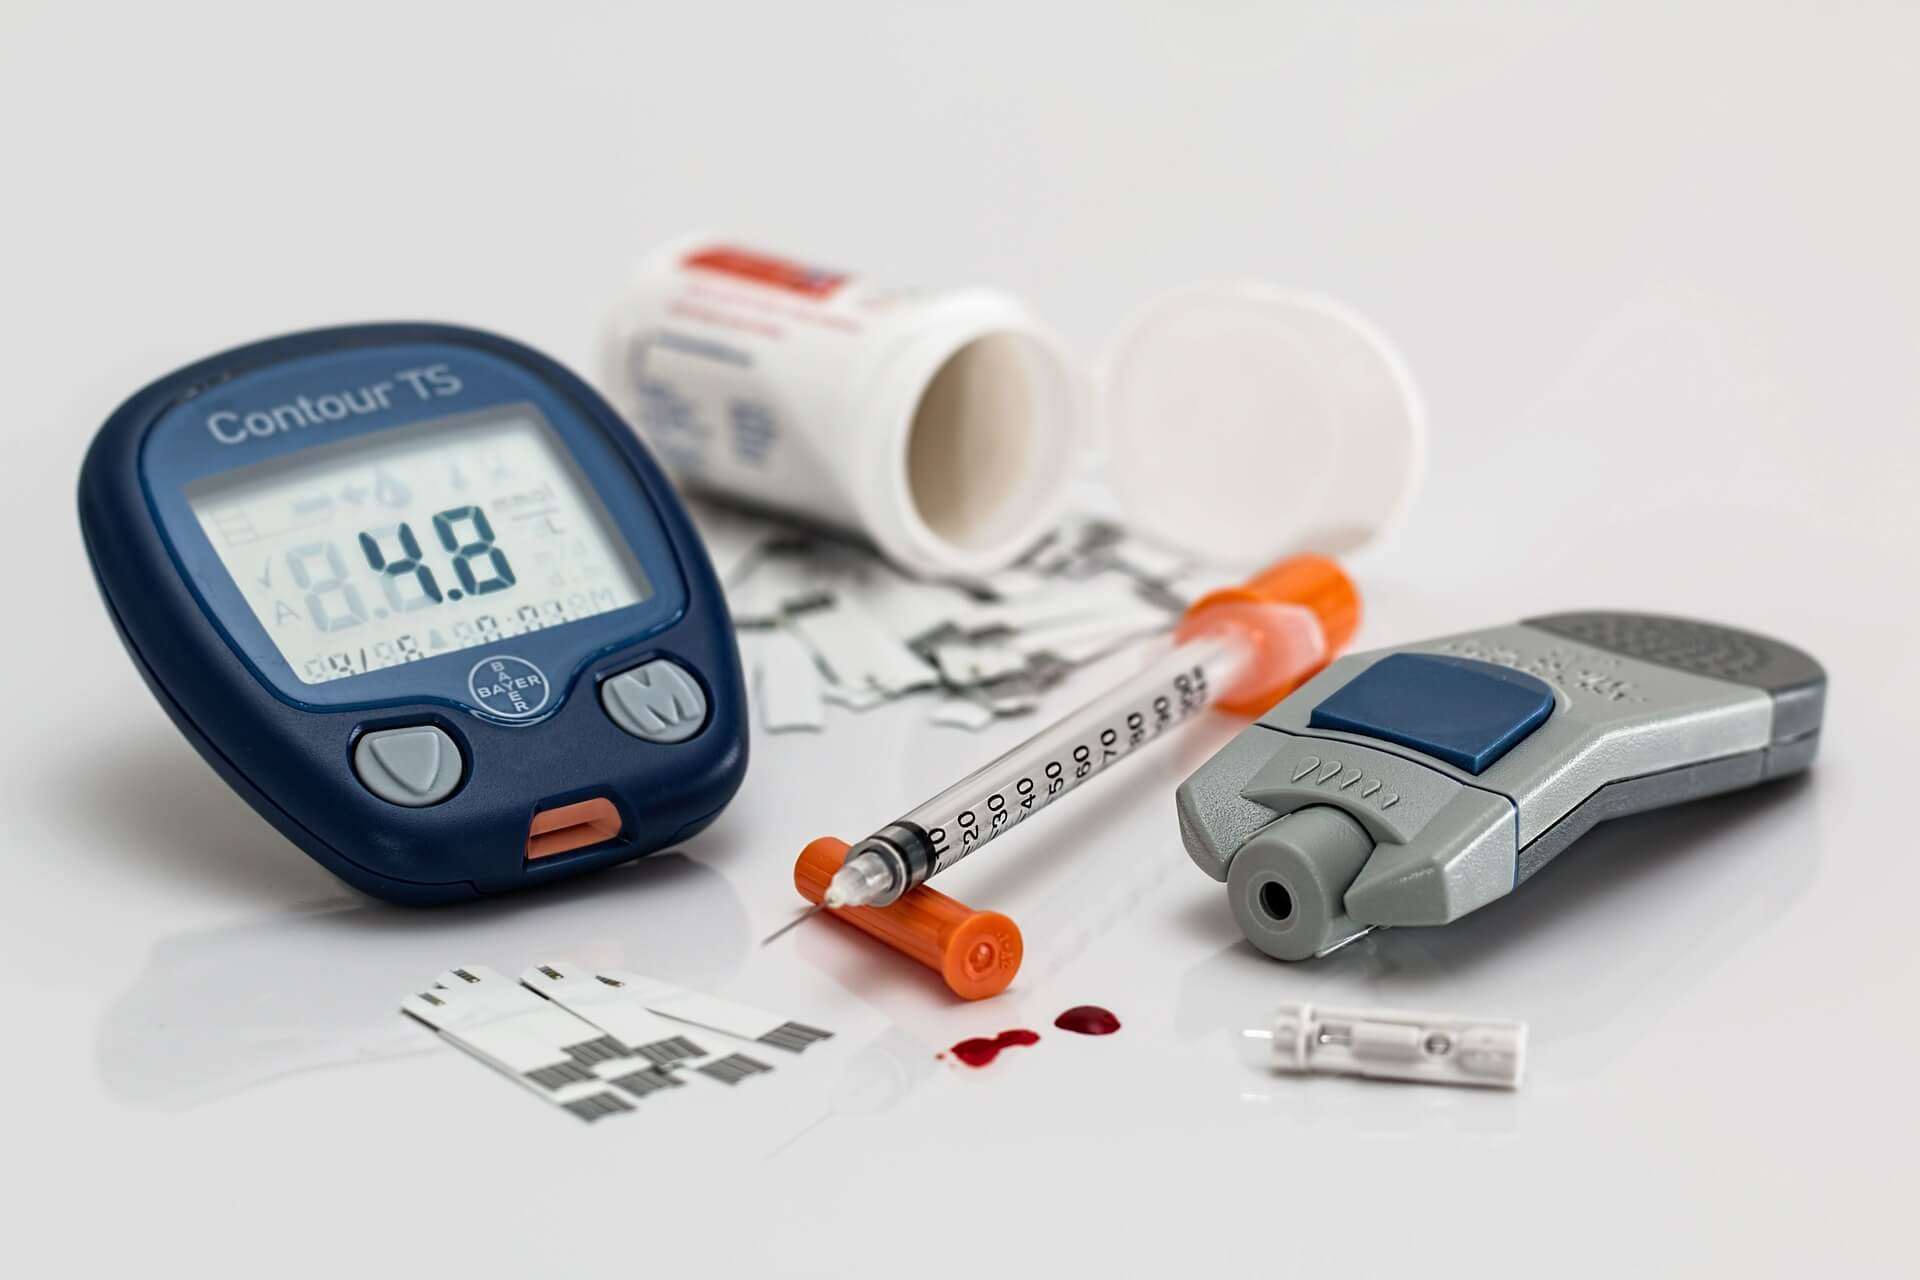 blood sugar monitor and accessories